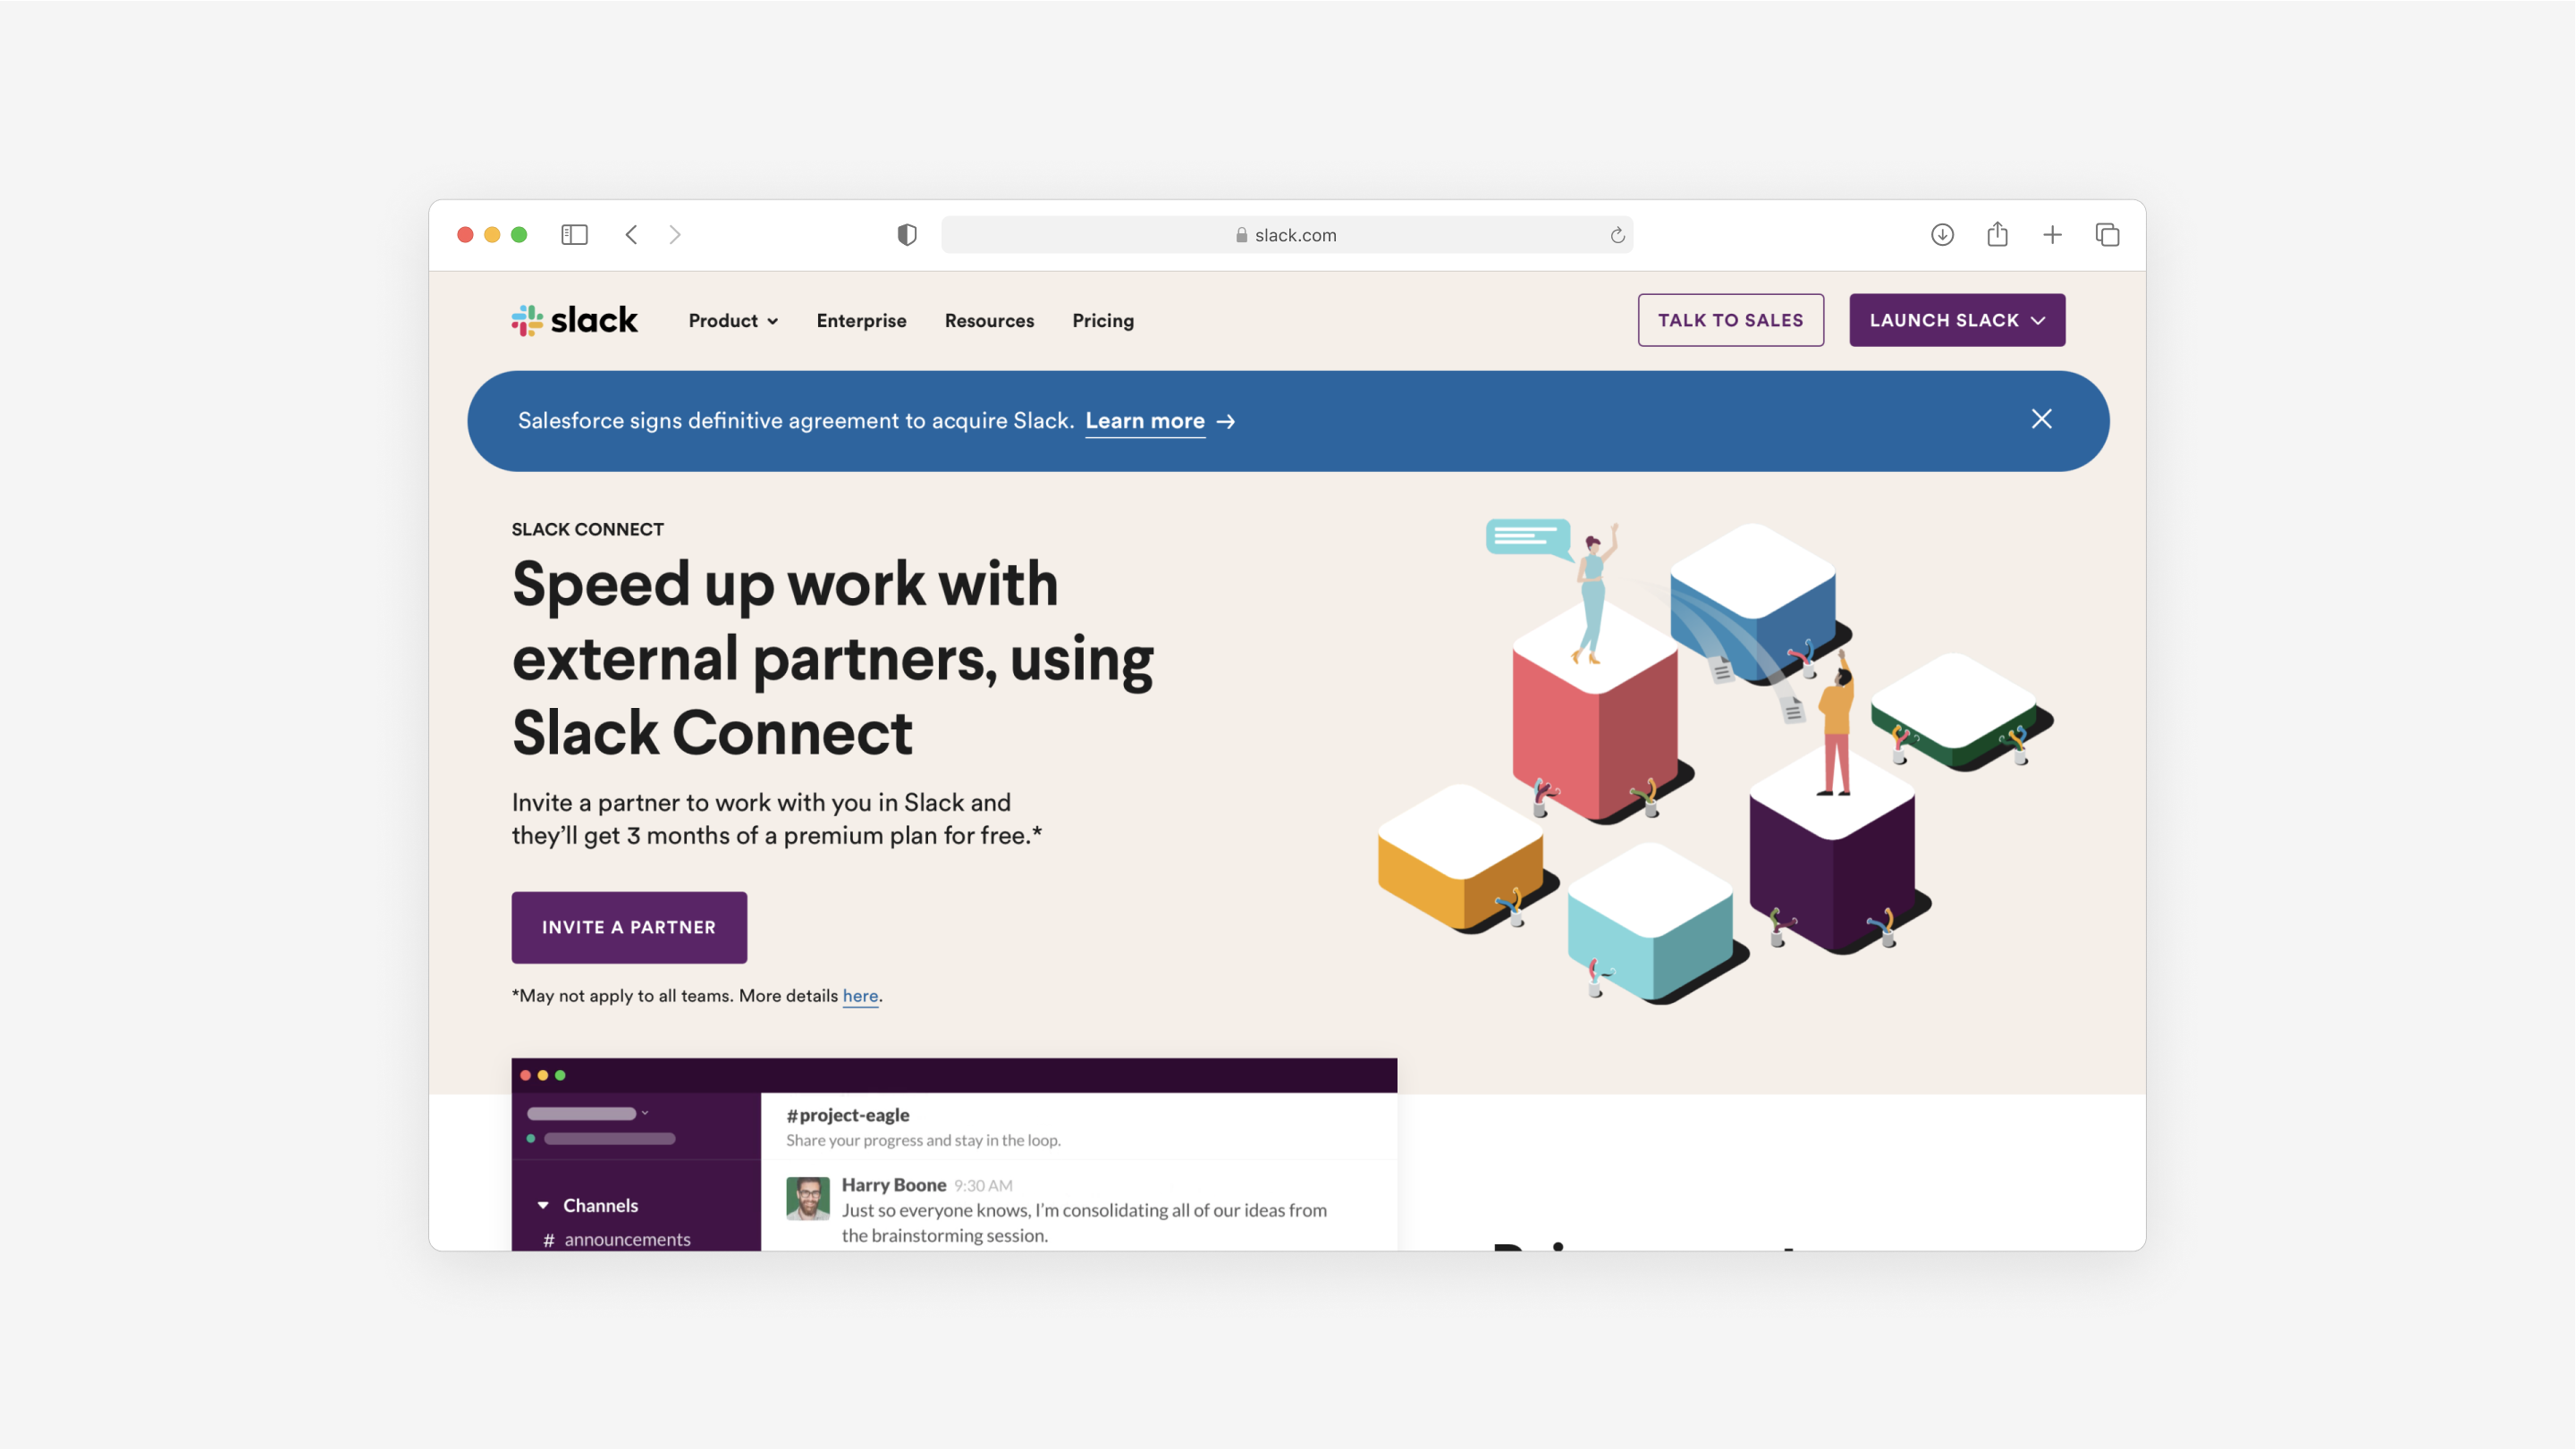 the website for Slack is a great example of a good B2B website